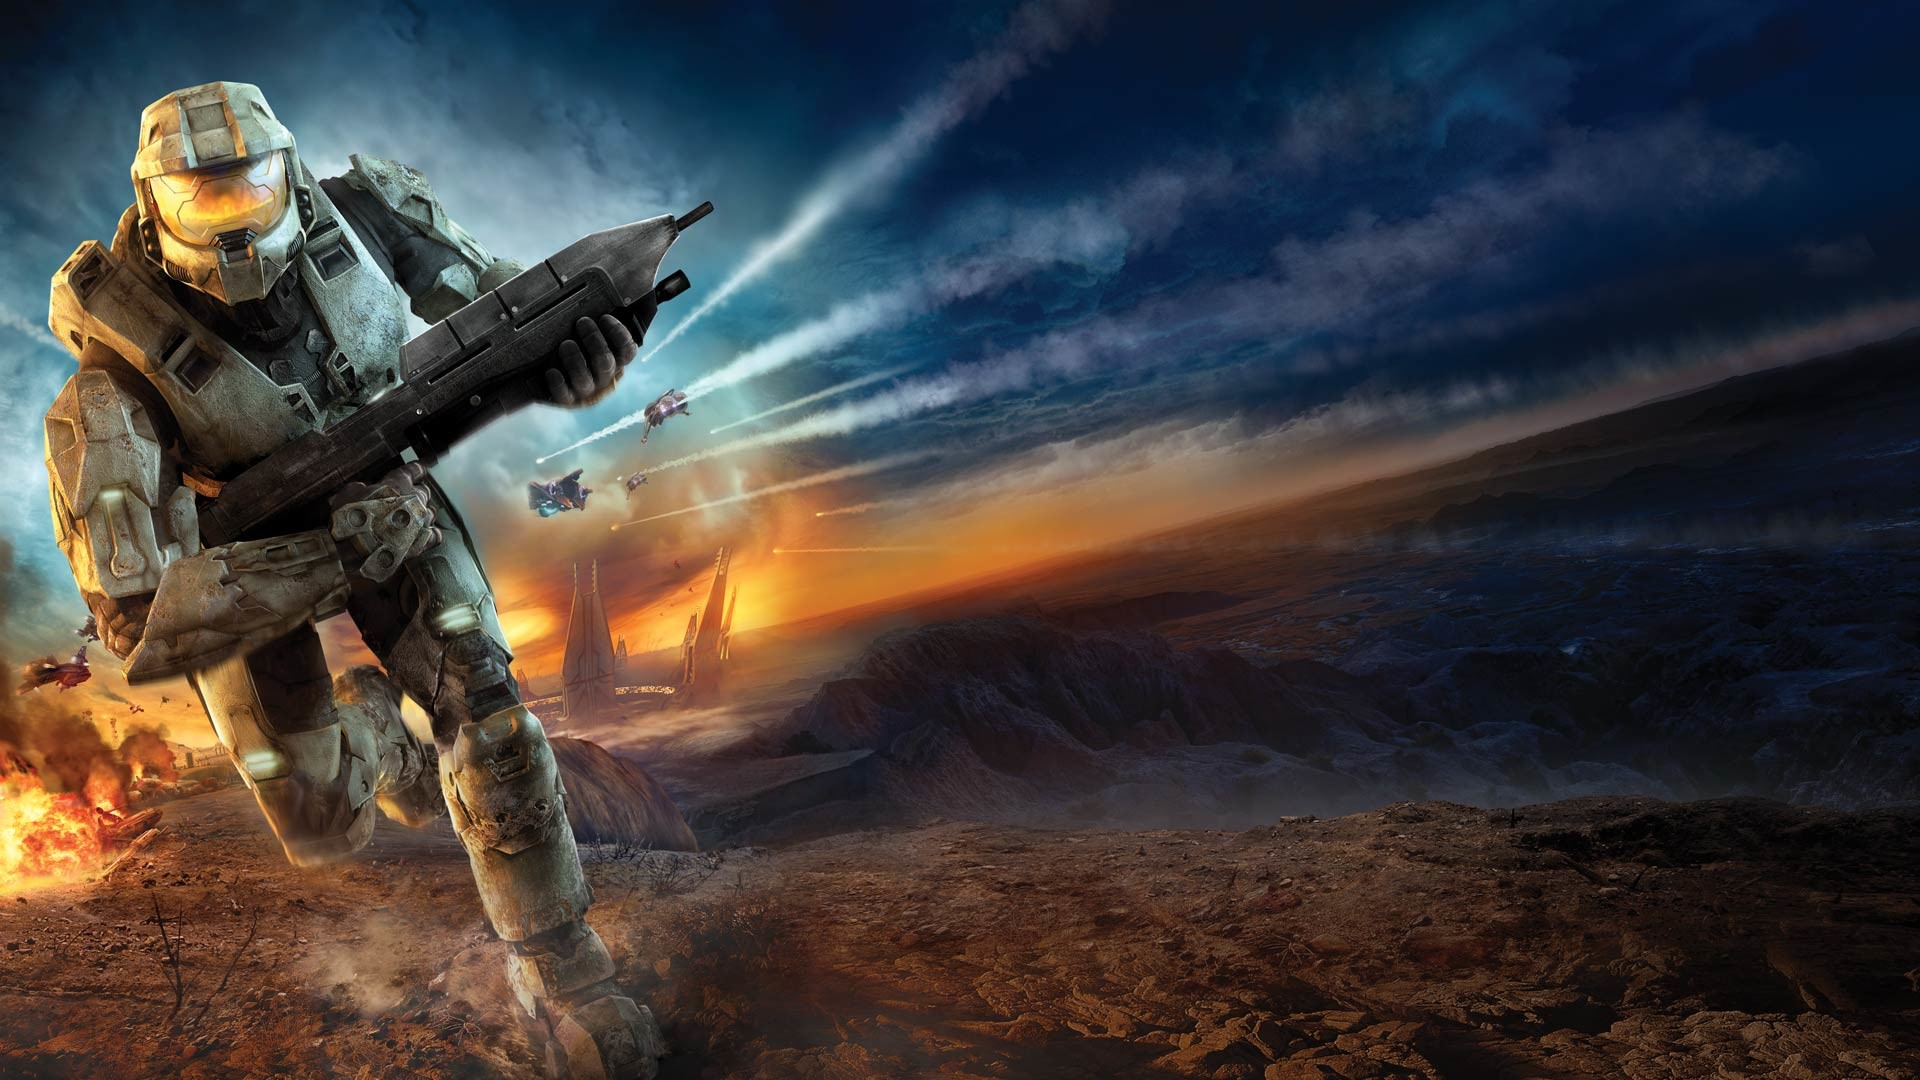 High Resolution Halo 3 Odst Wallpaper HD 12 Game Full Size …   Download  Wallpaper   Pinterest   Wallpaper